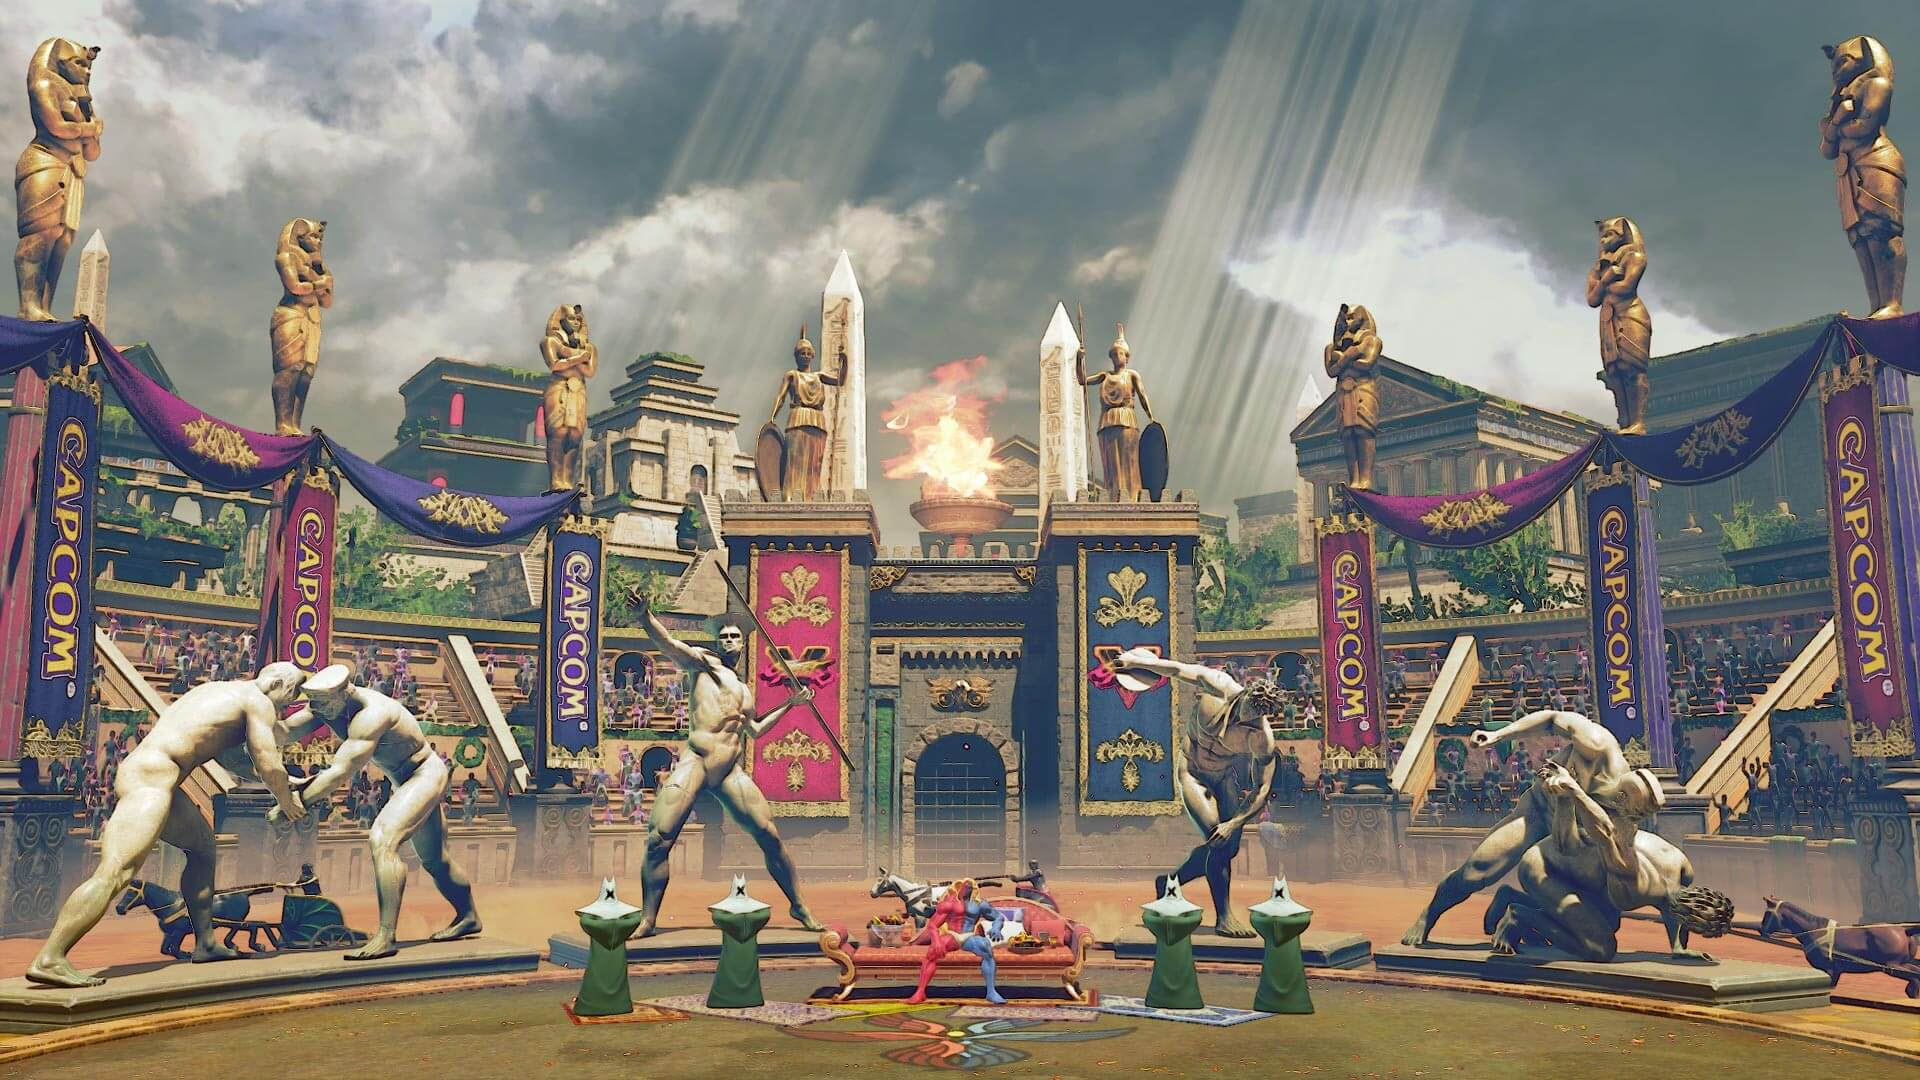 Capcom reveals Ring of Prosperity stage for Street Fighter 5